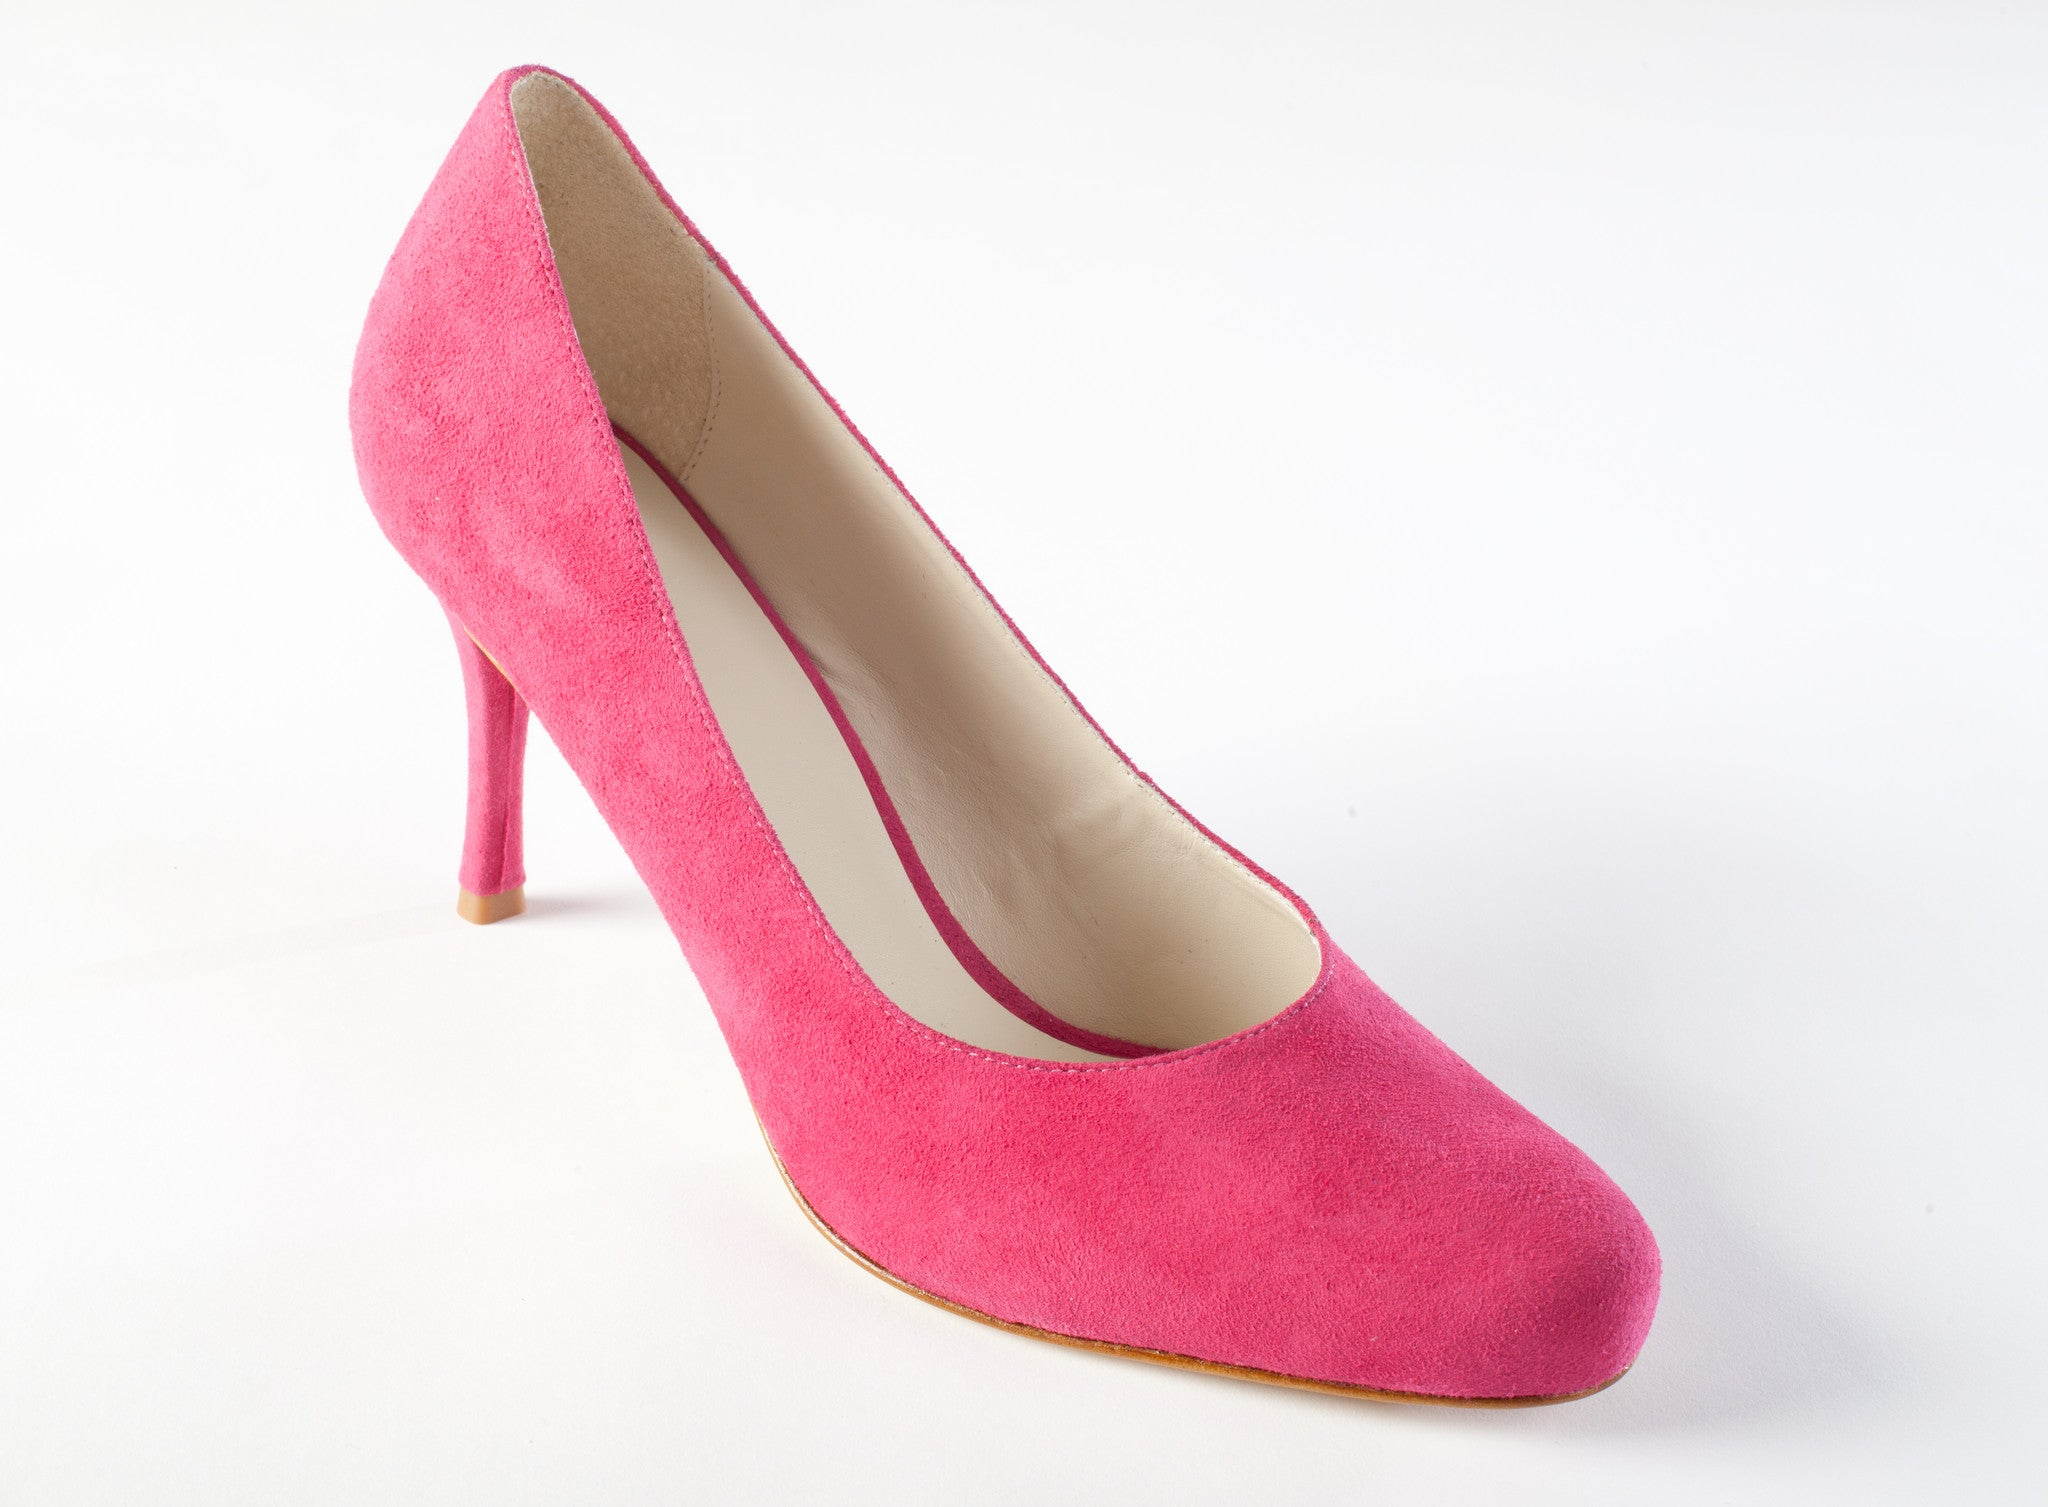 Pink Suede Pumps, Large Size Shoes, Large Size Dress Pumps, size 12 pumps